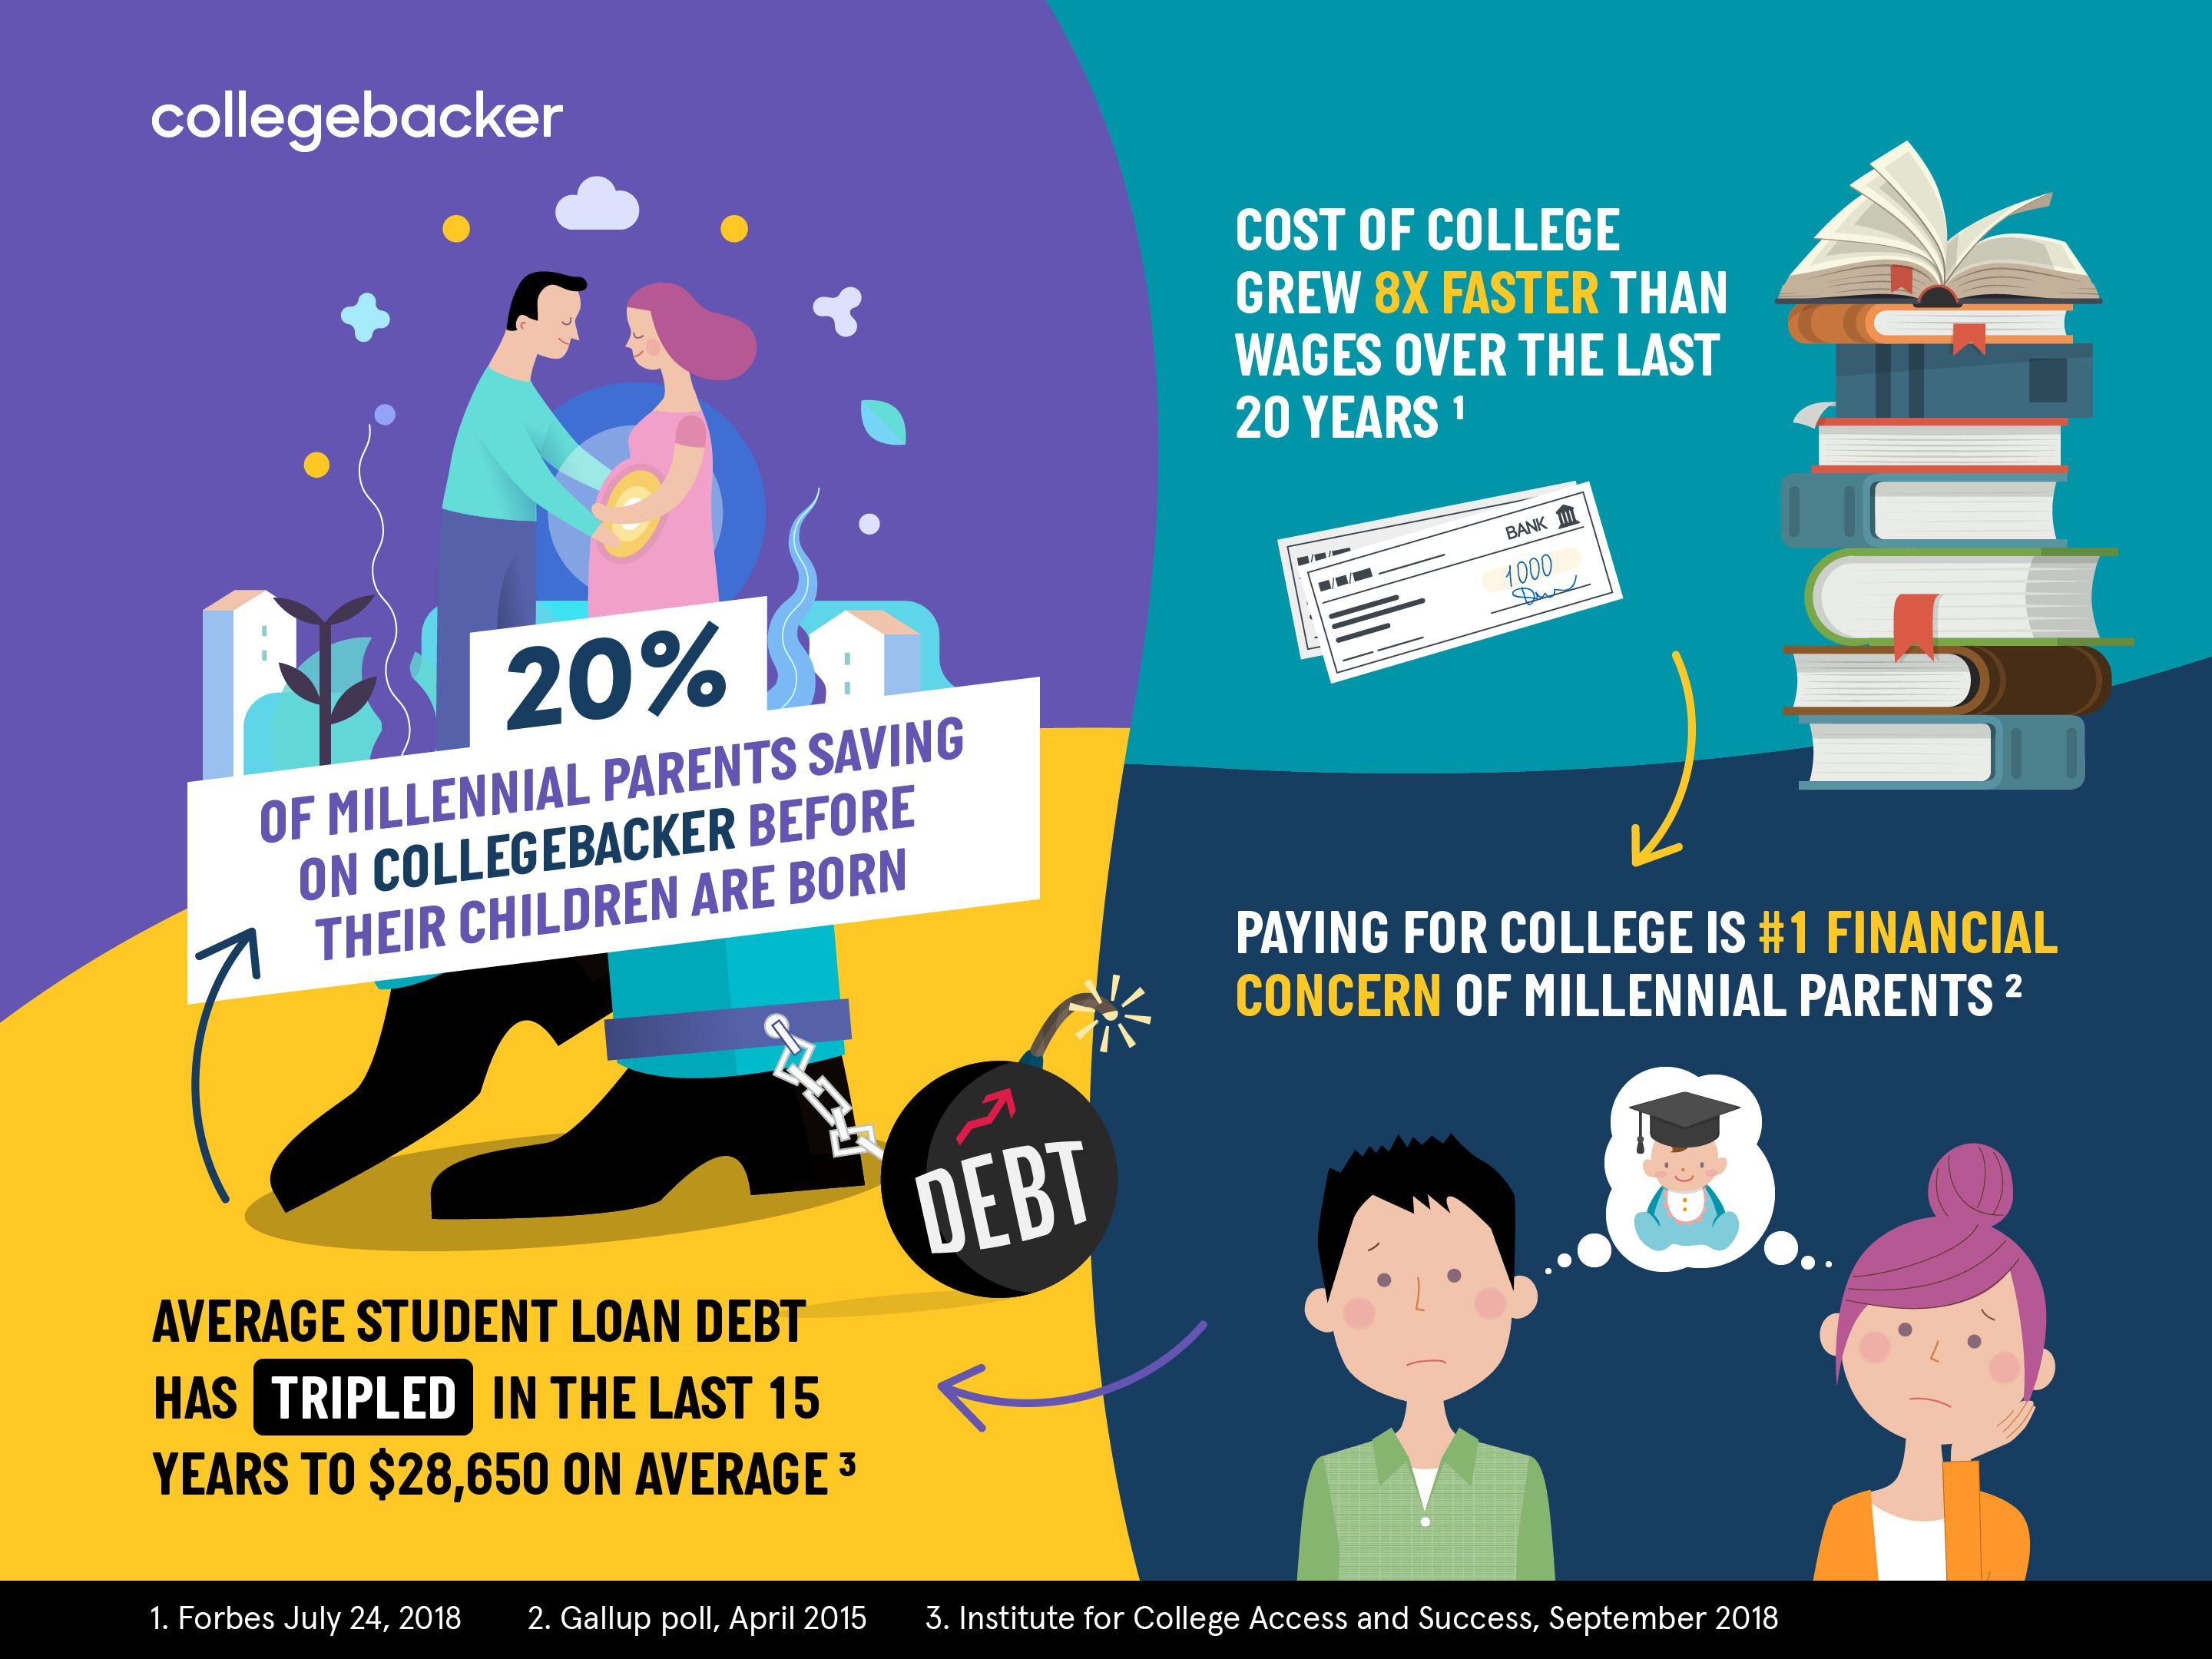 Did you know that paying for college is the 1 financial